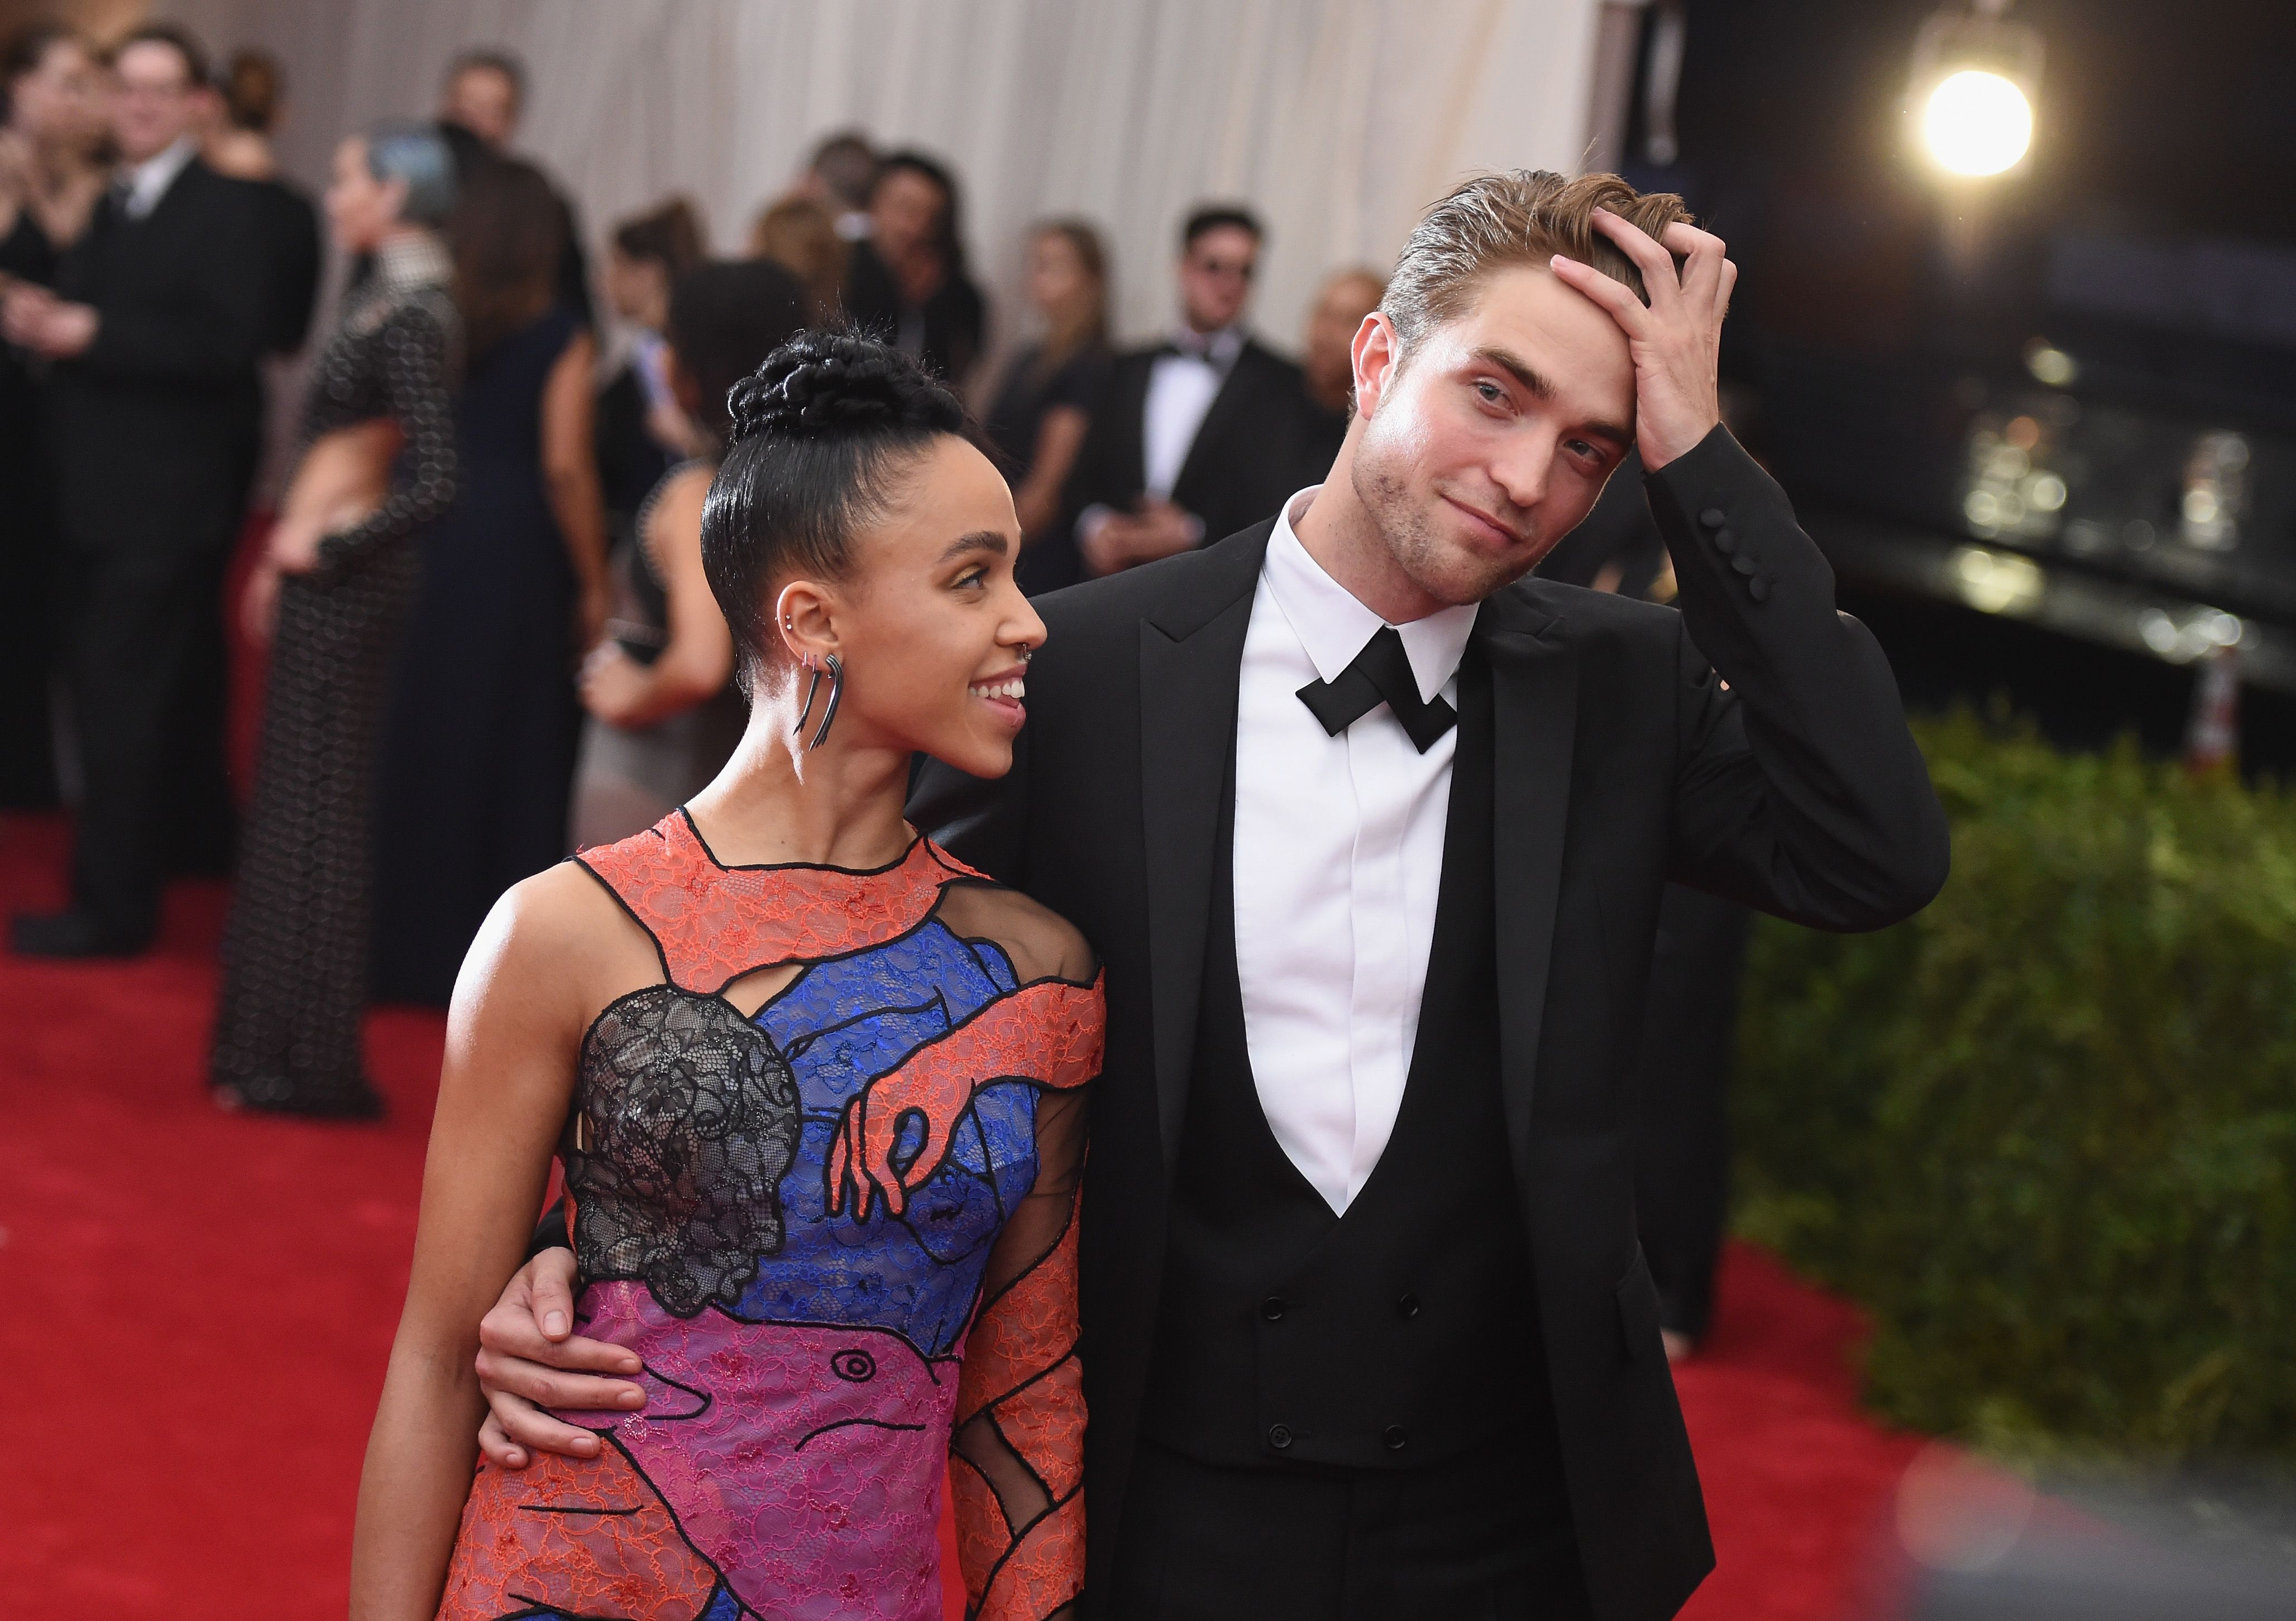 Robert Pattinson and FKA Twigs End Engagement - Pattison and Twigs Break Up